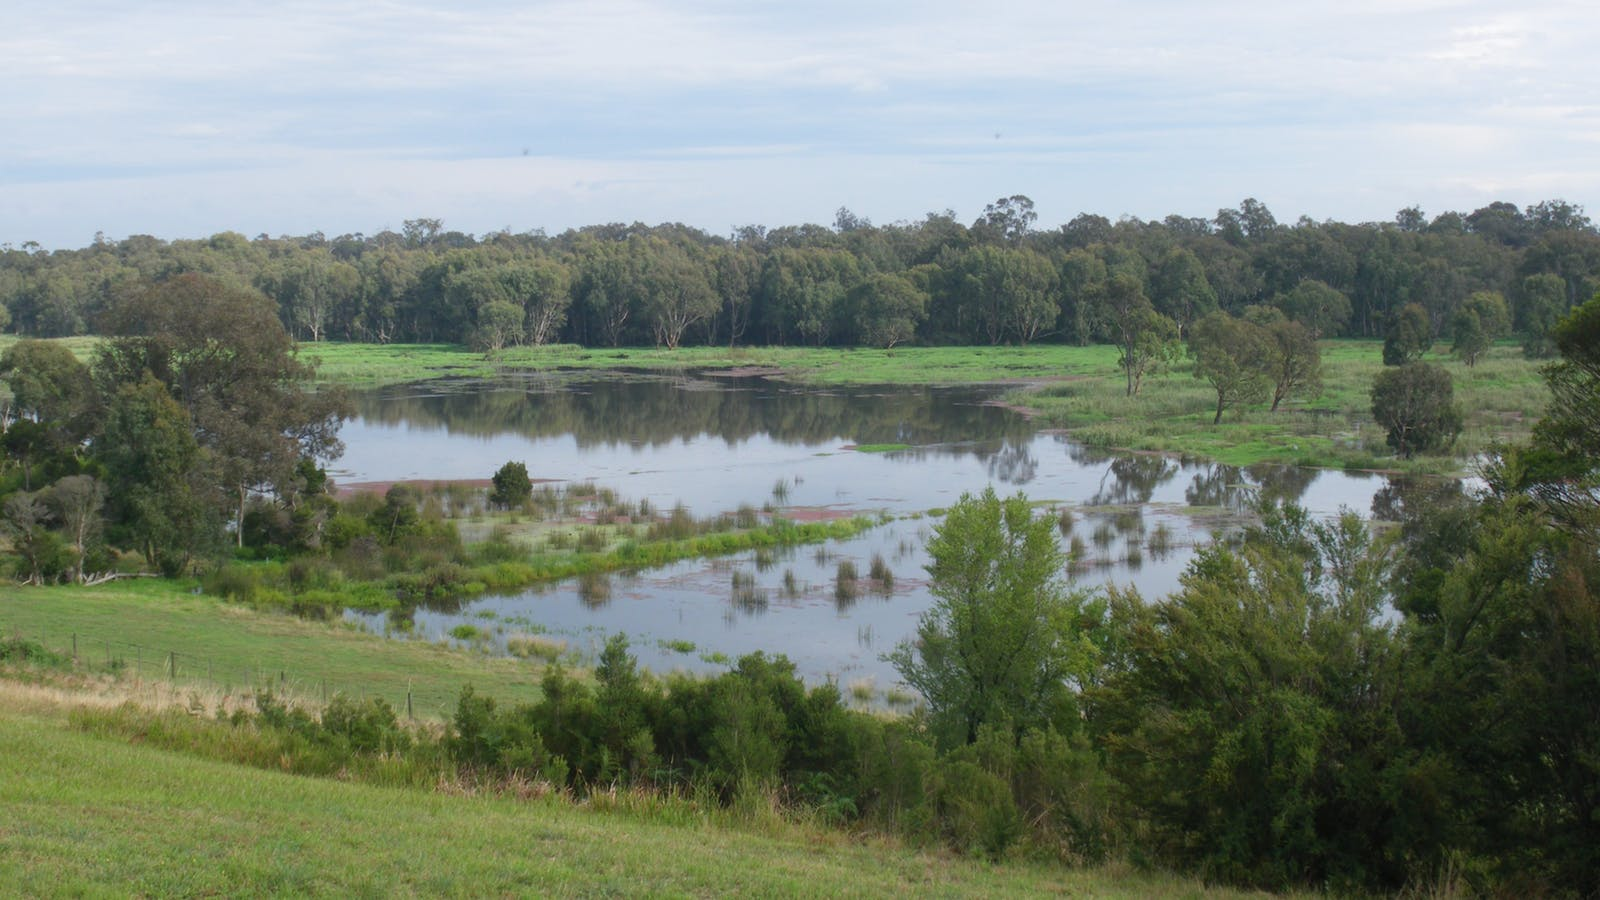 Spectacular wetland under water after rains early 2011